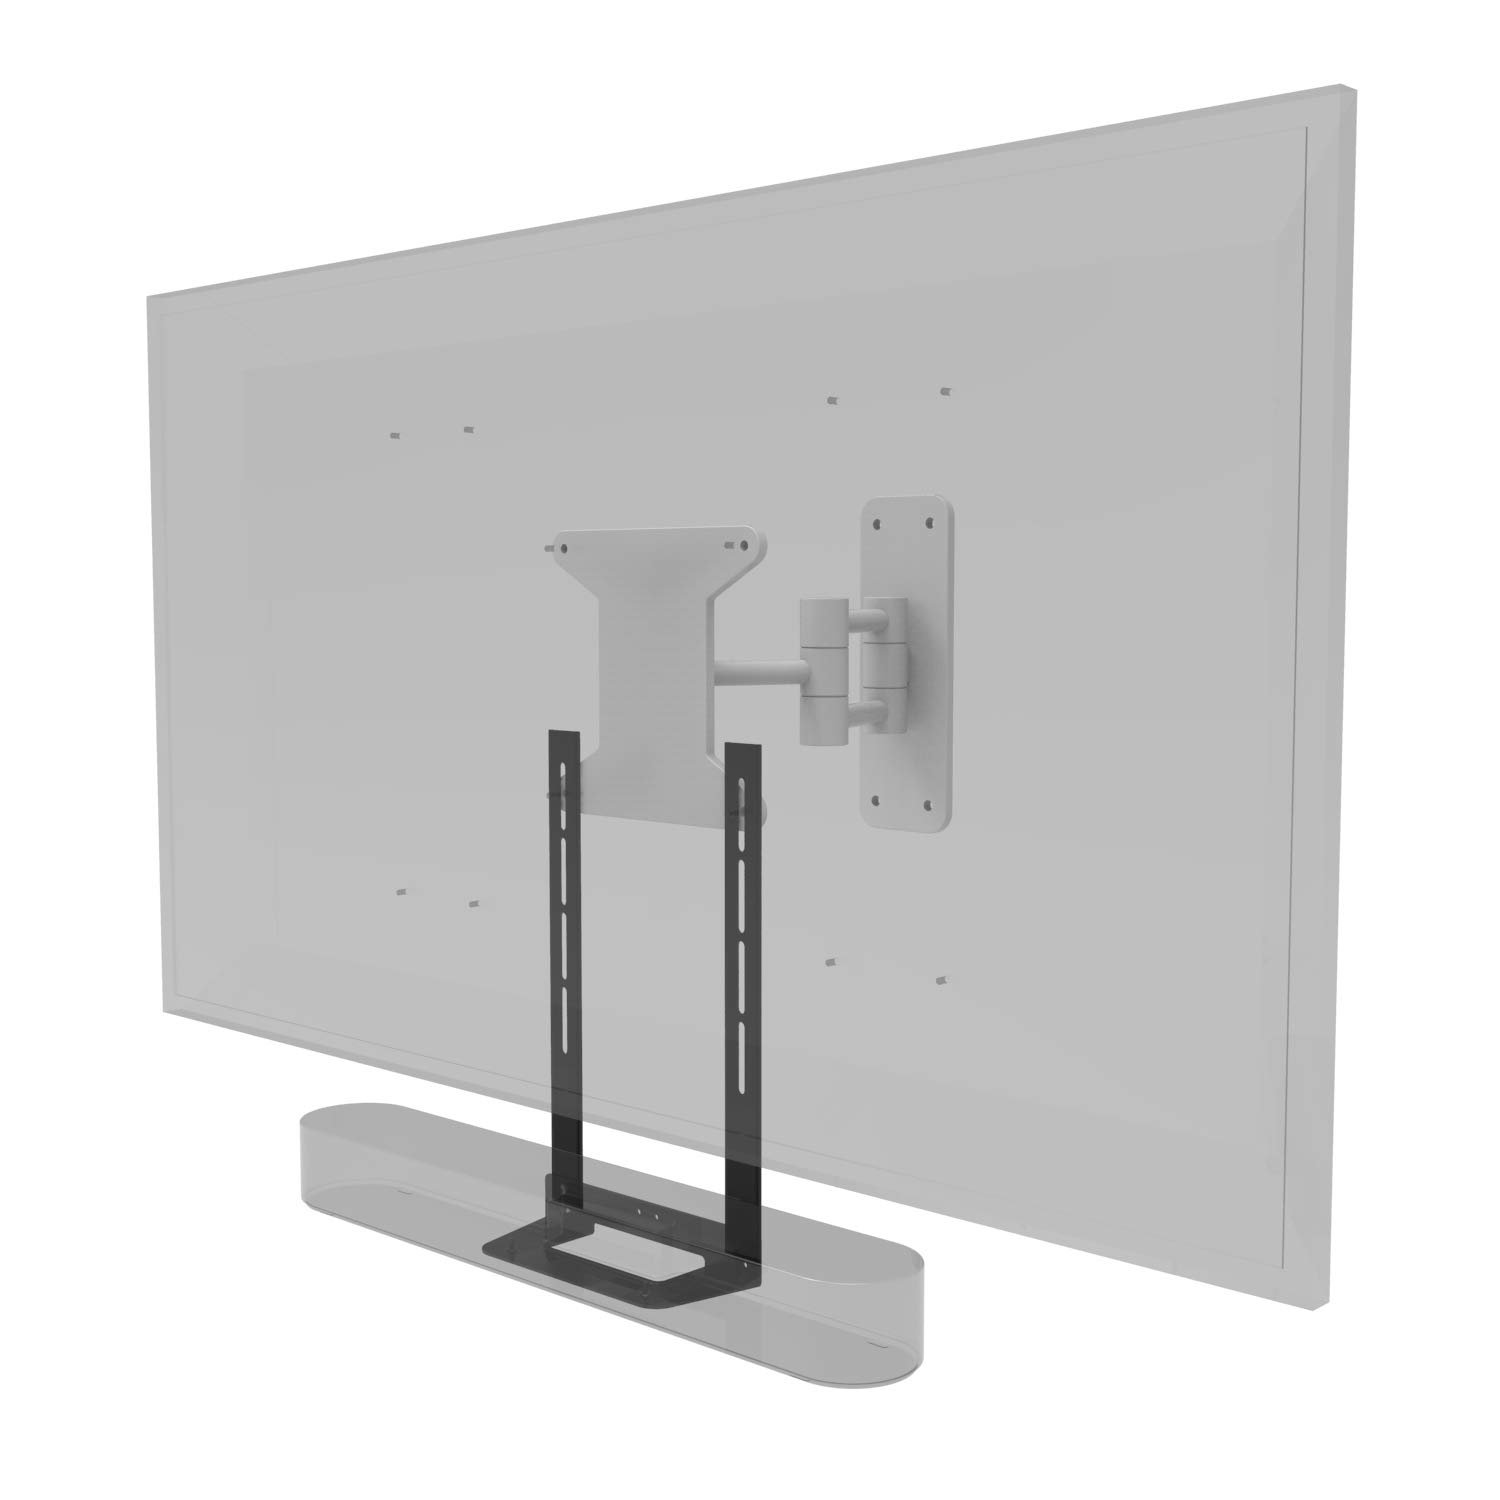 Soundbass Beam TV Mount, Black, Compatible with Sonos Beam Mounting Bracket for TV, Full Hardware Kit Included, Beam Soundbar, Designed in The UK by Sound Bass